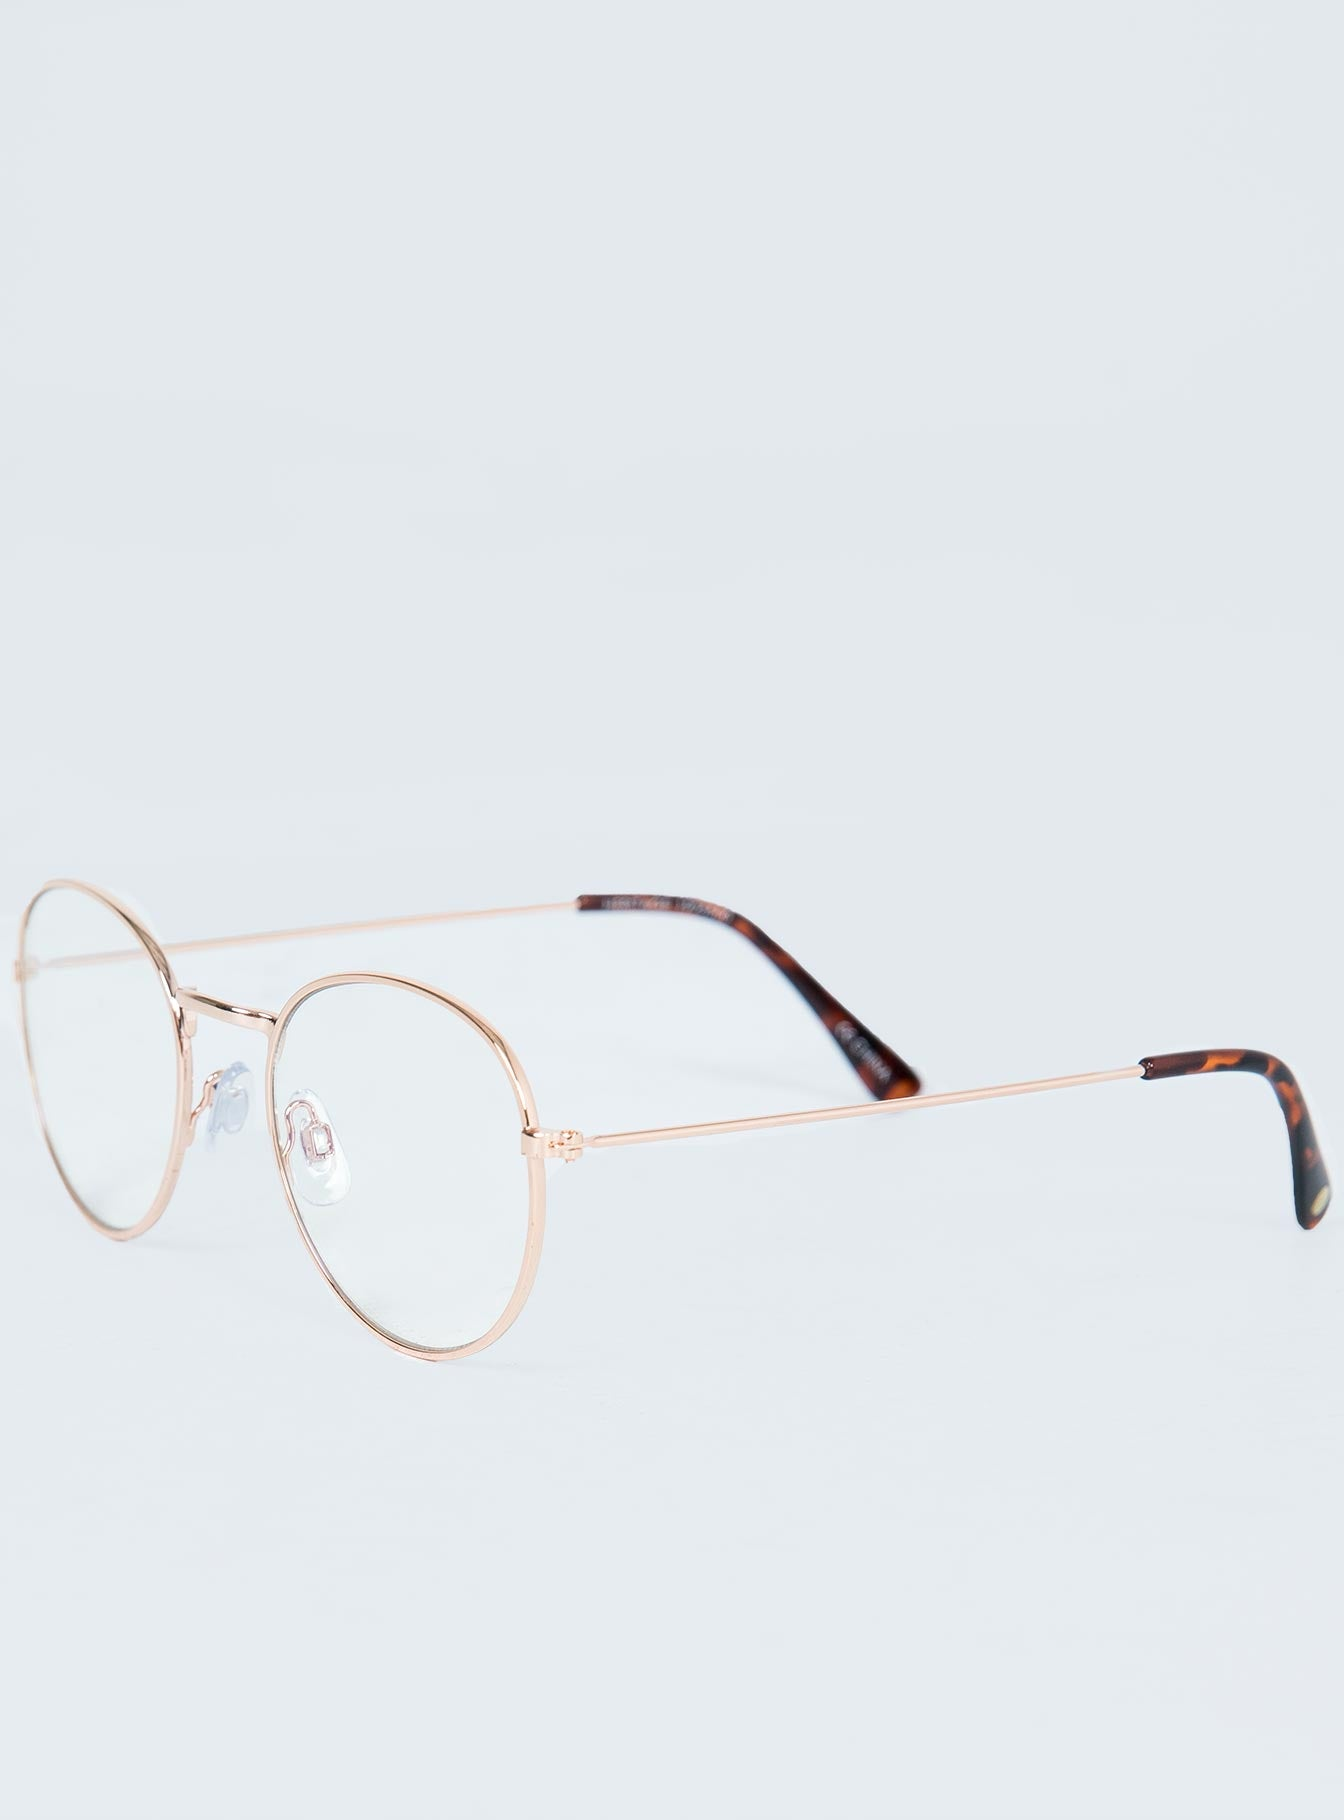 Minkpink Heritage Blue Light Glasses